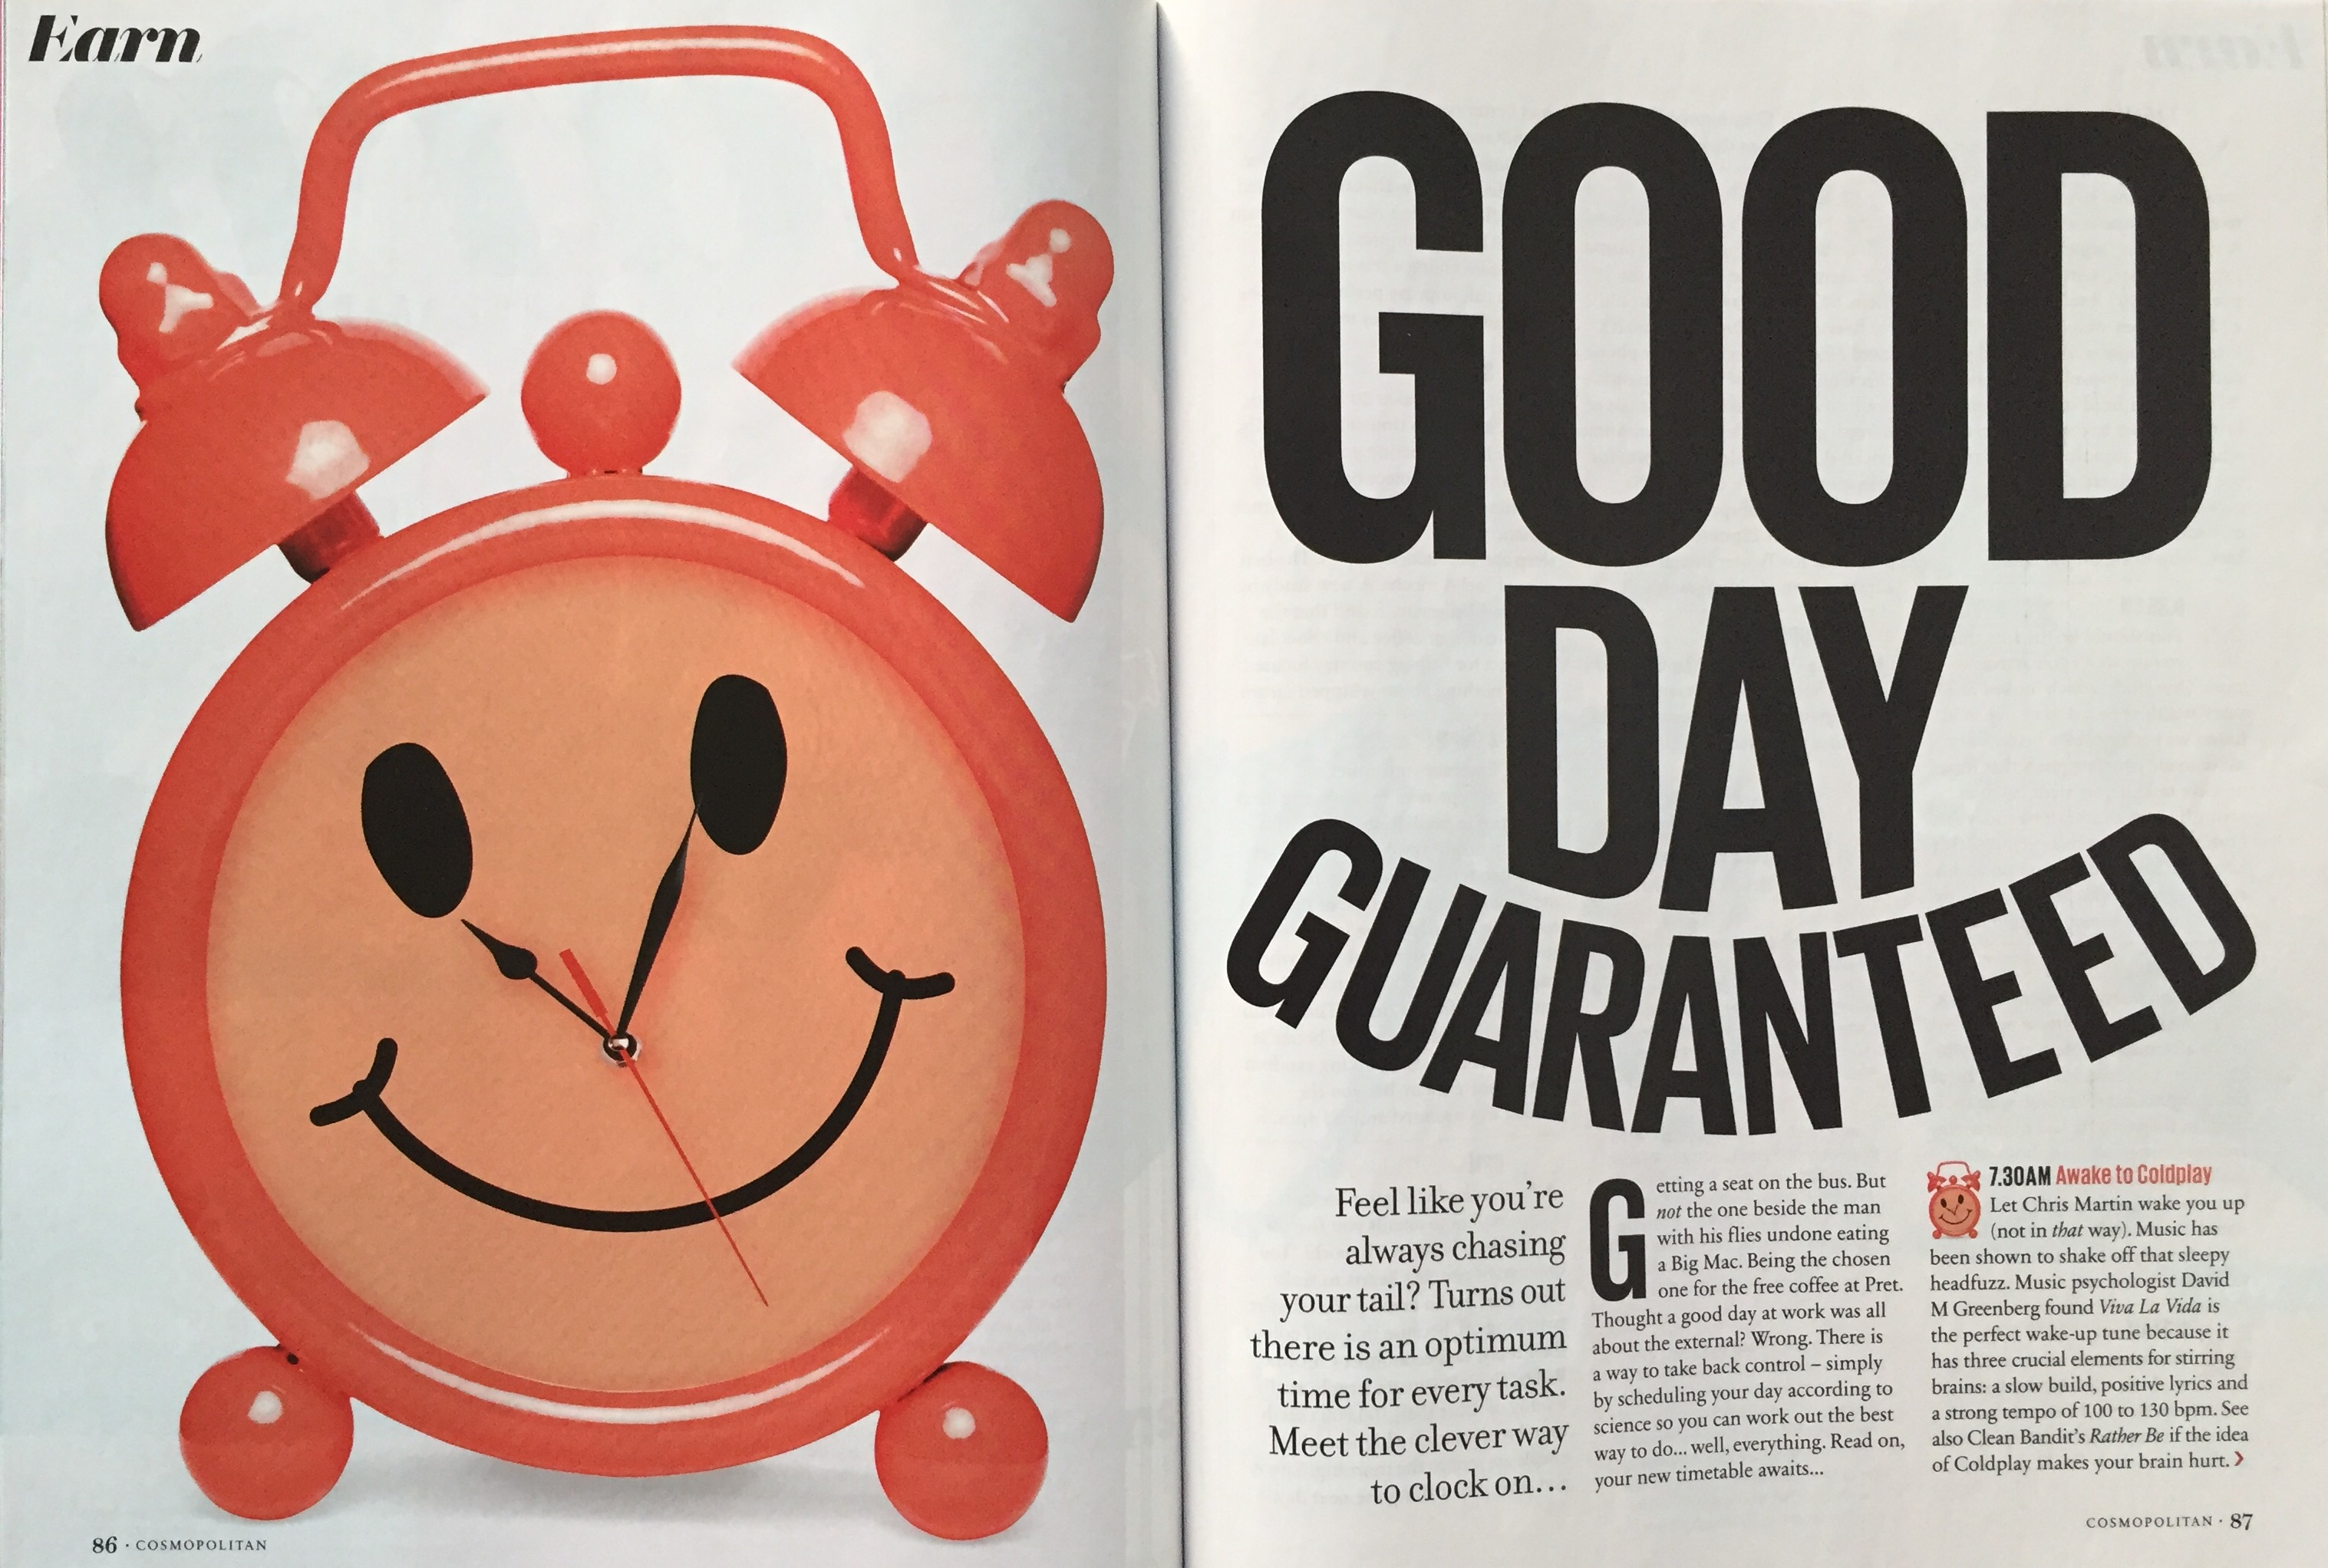 Cosmo perfect day image